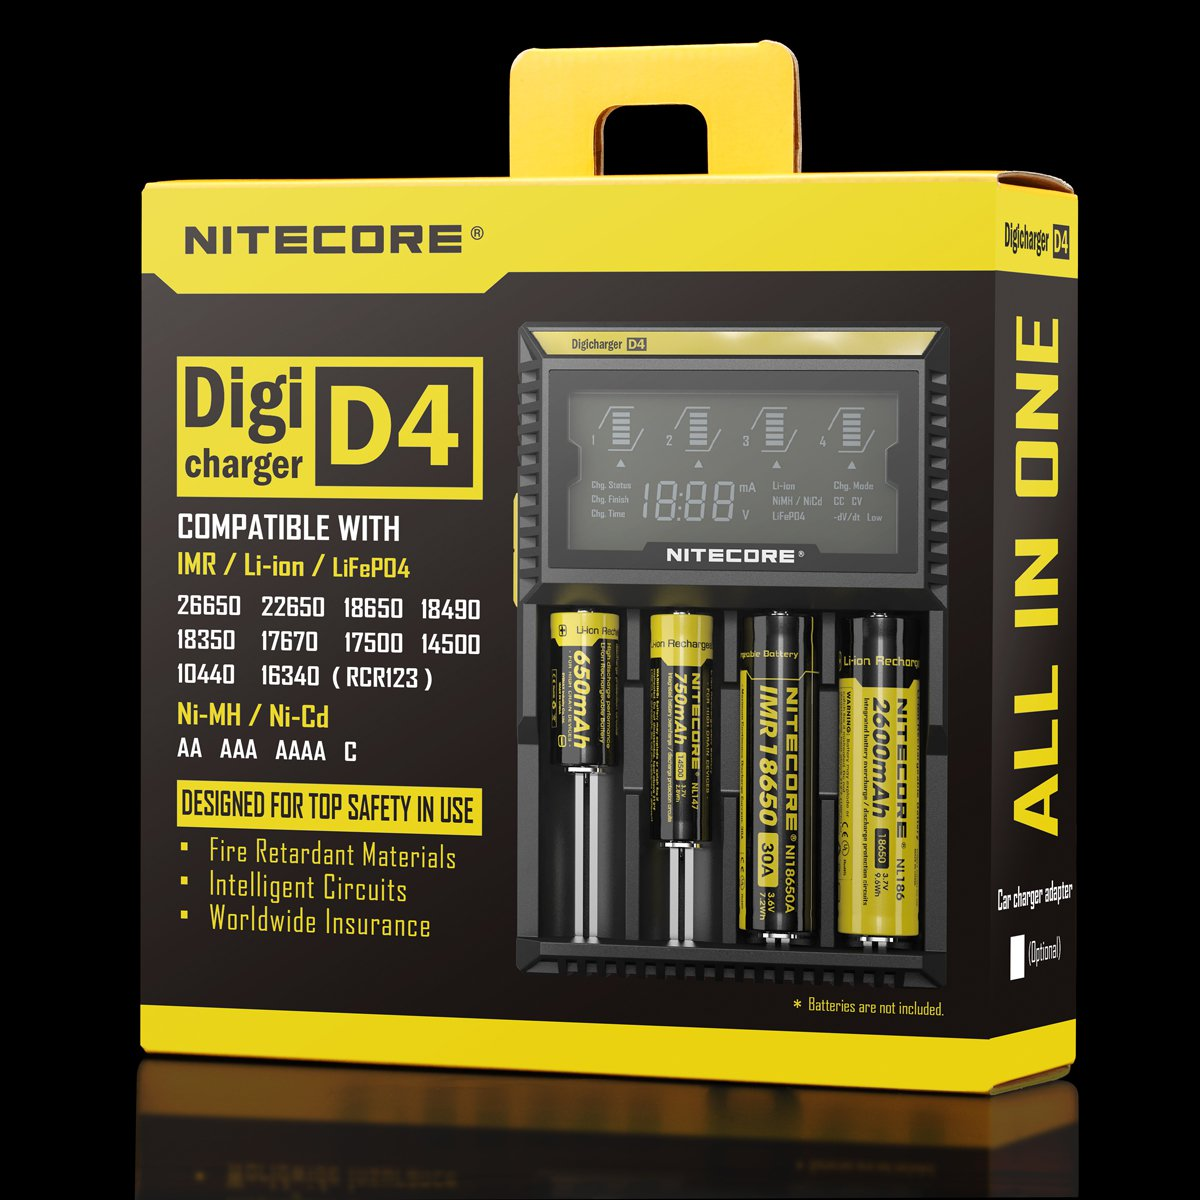 NITCORE_D4_box battery recharge uae